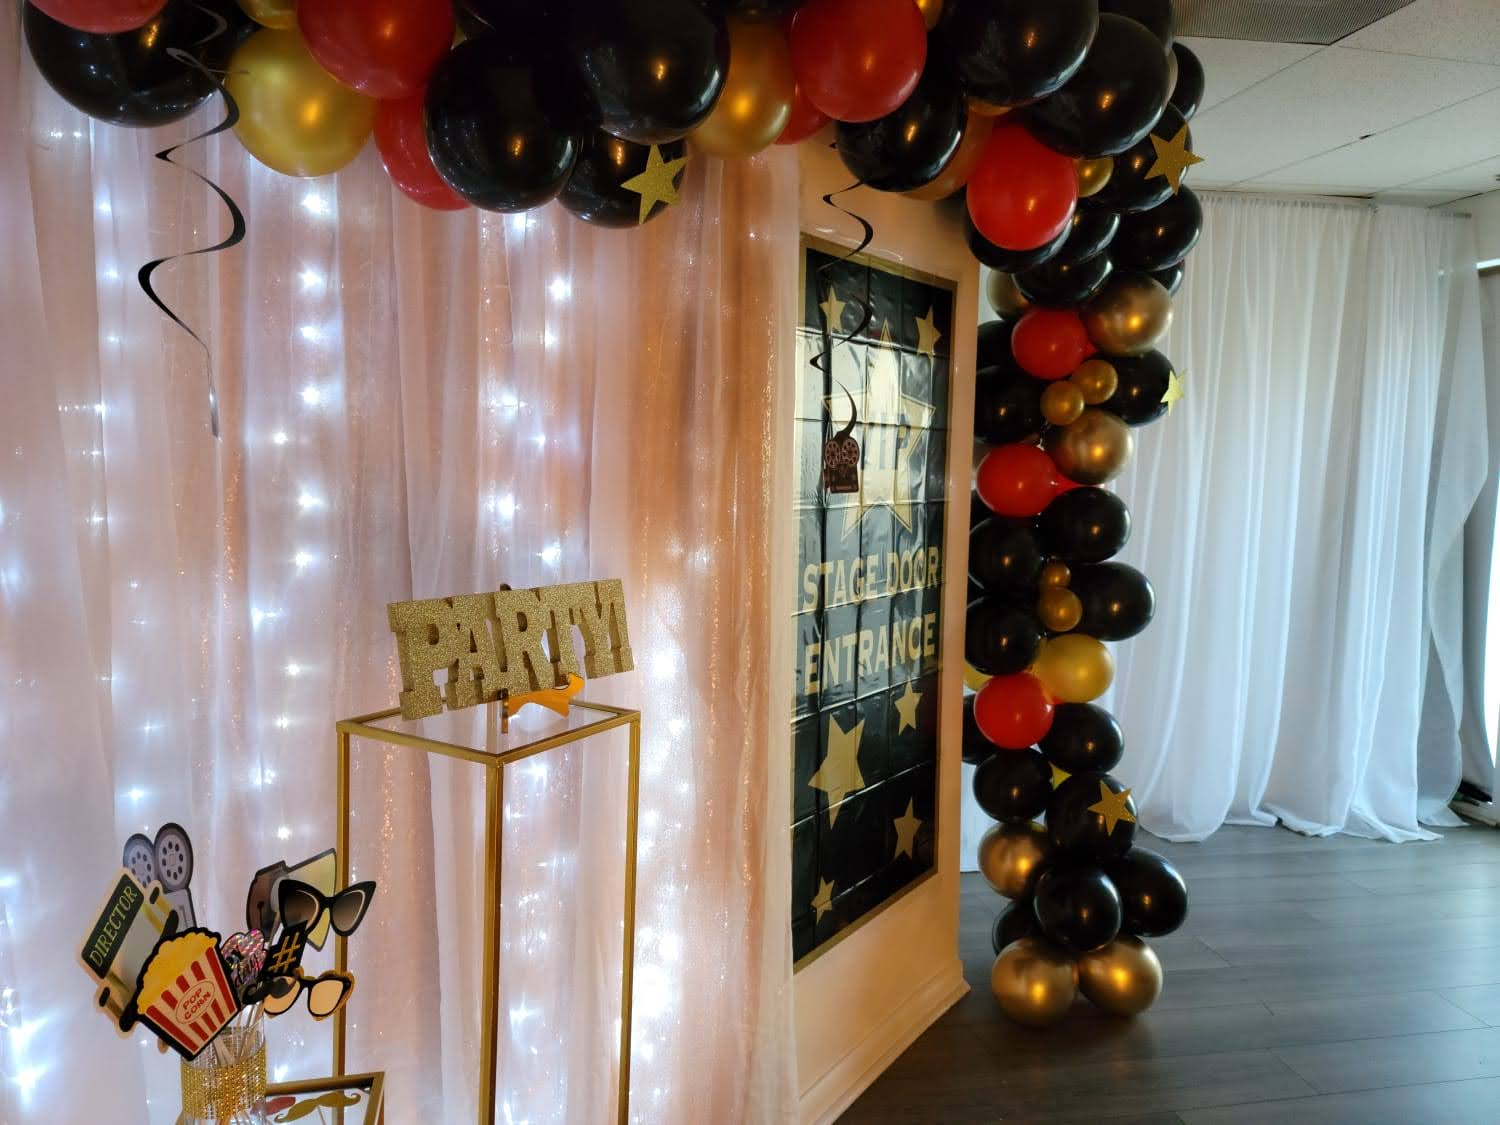 Black, red and gold balloons party decoration in venue